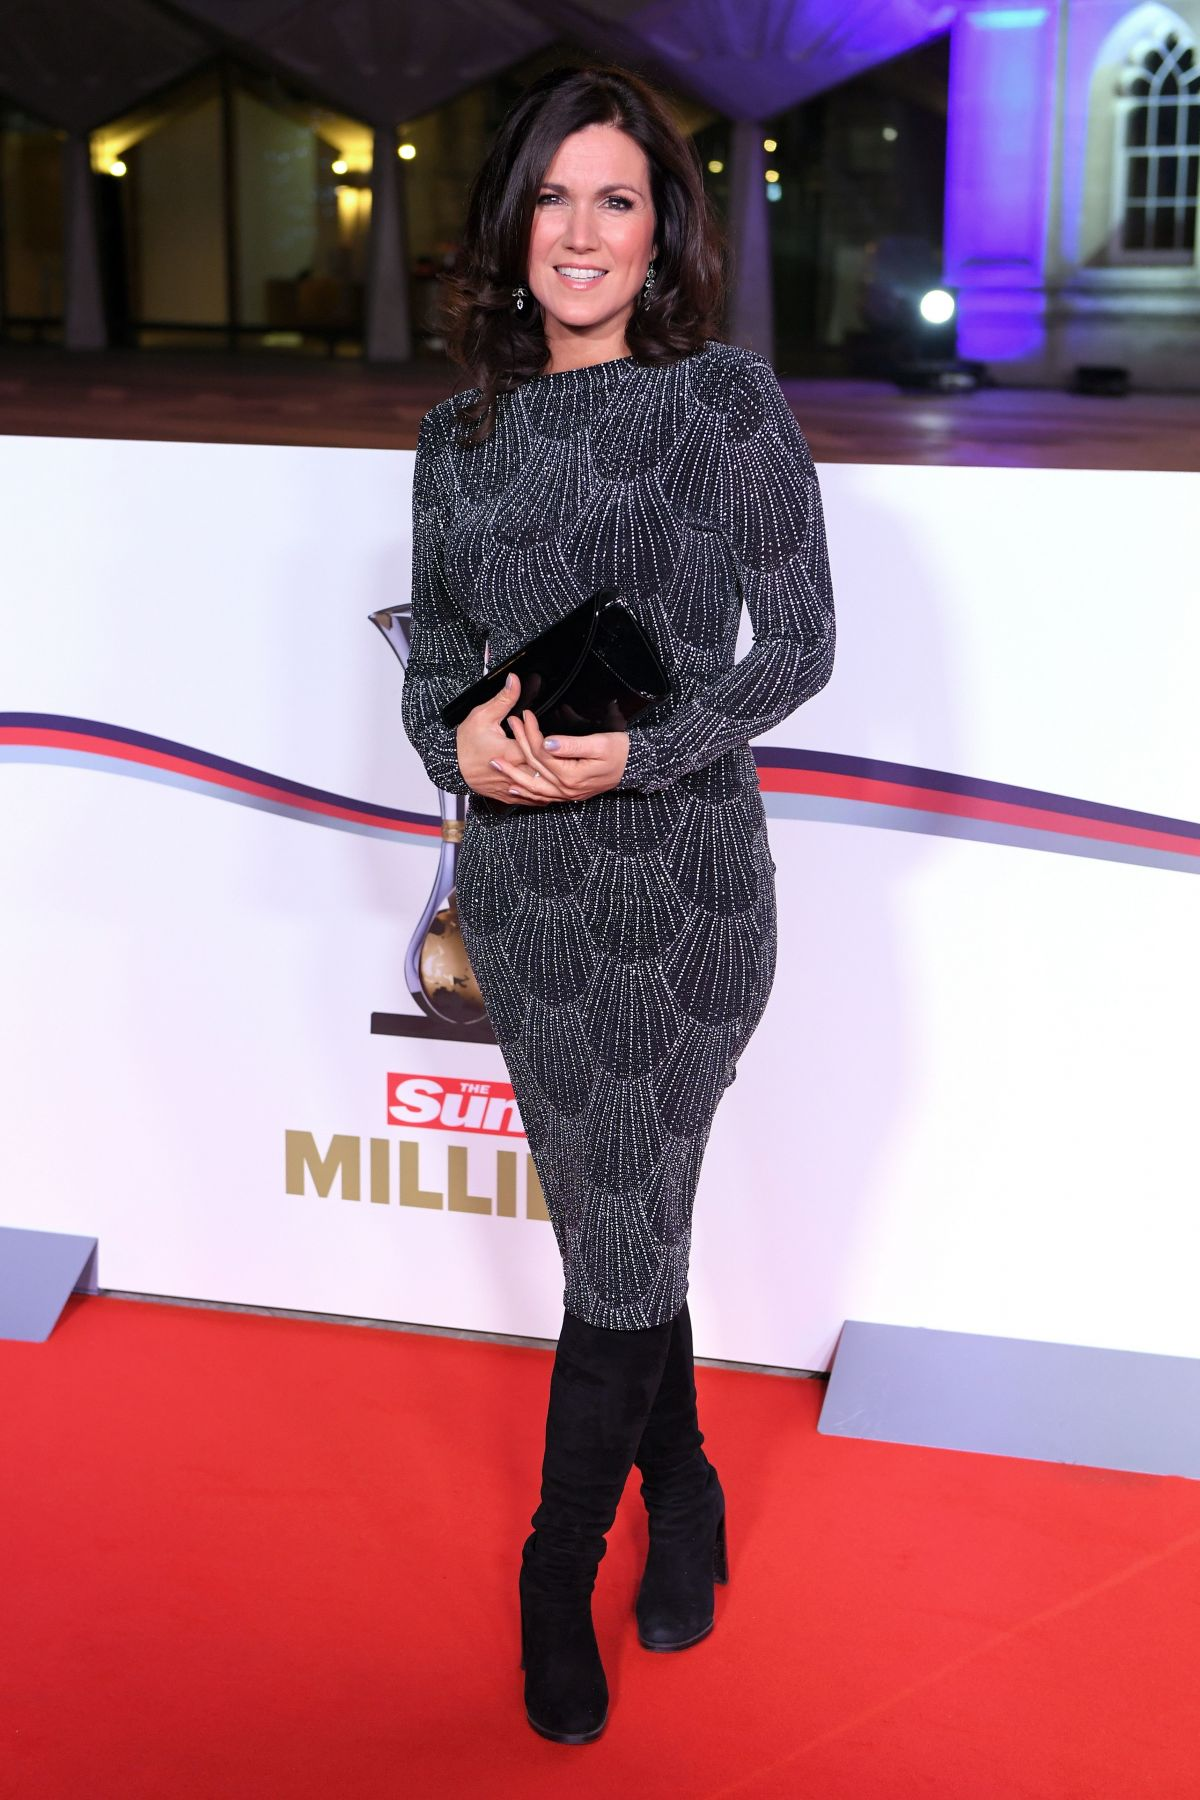 SUSANNA REID at The Sun Military Awards in London 12/14/2016